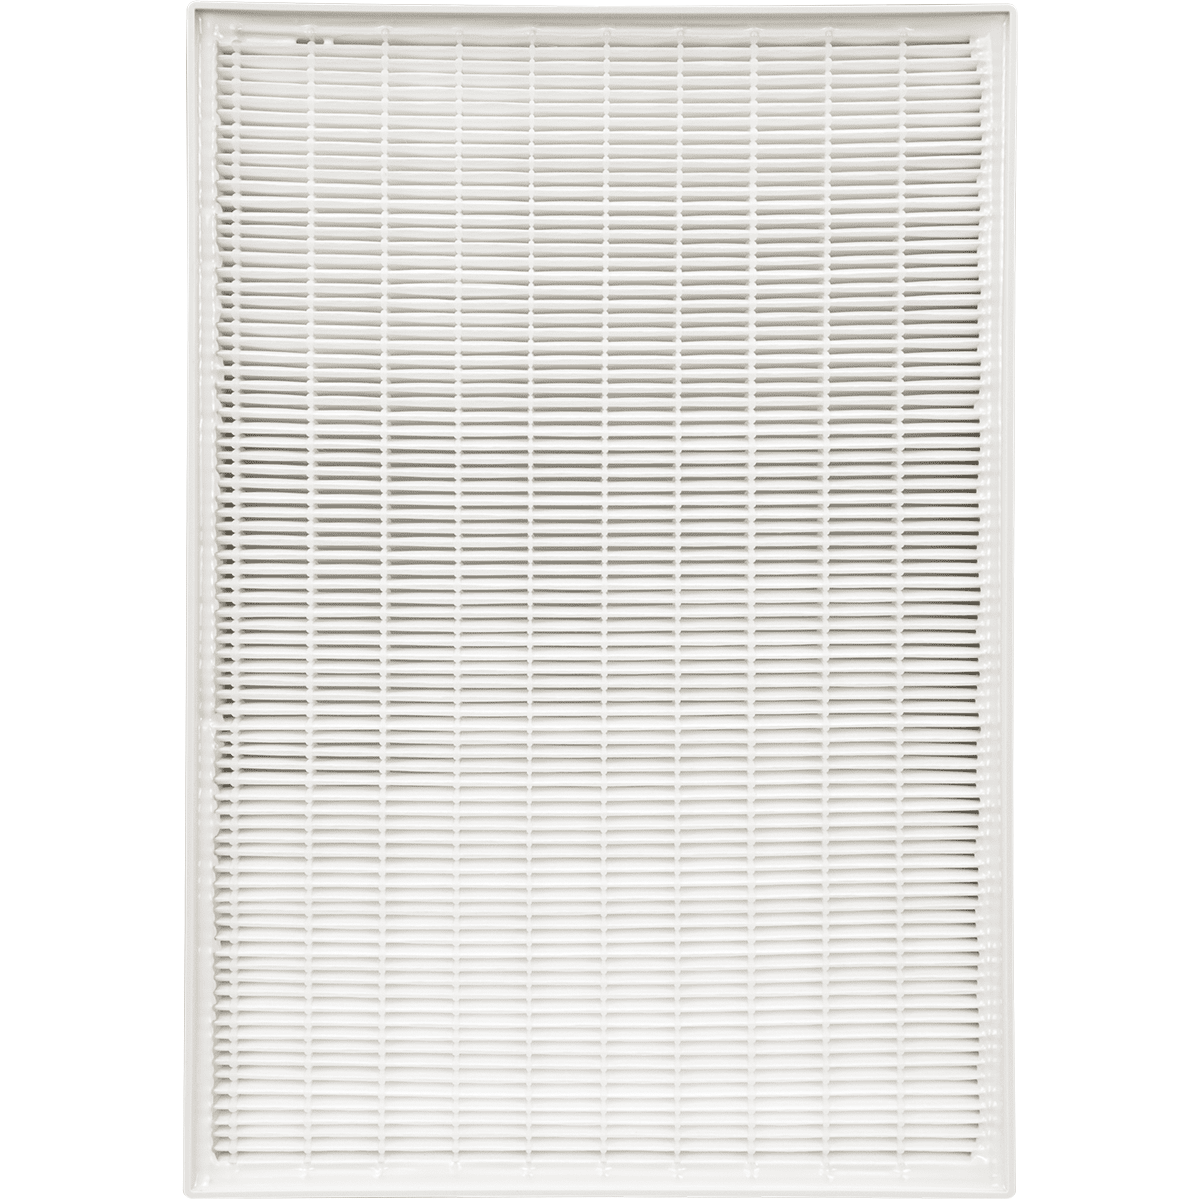 Filter-Monster Small HEPA Replacement Filter Compatible with Whirlpool Air Purifiers (1183051G)